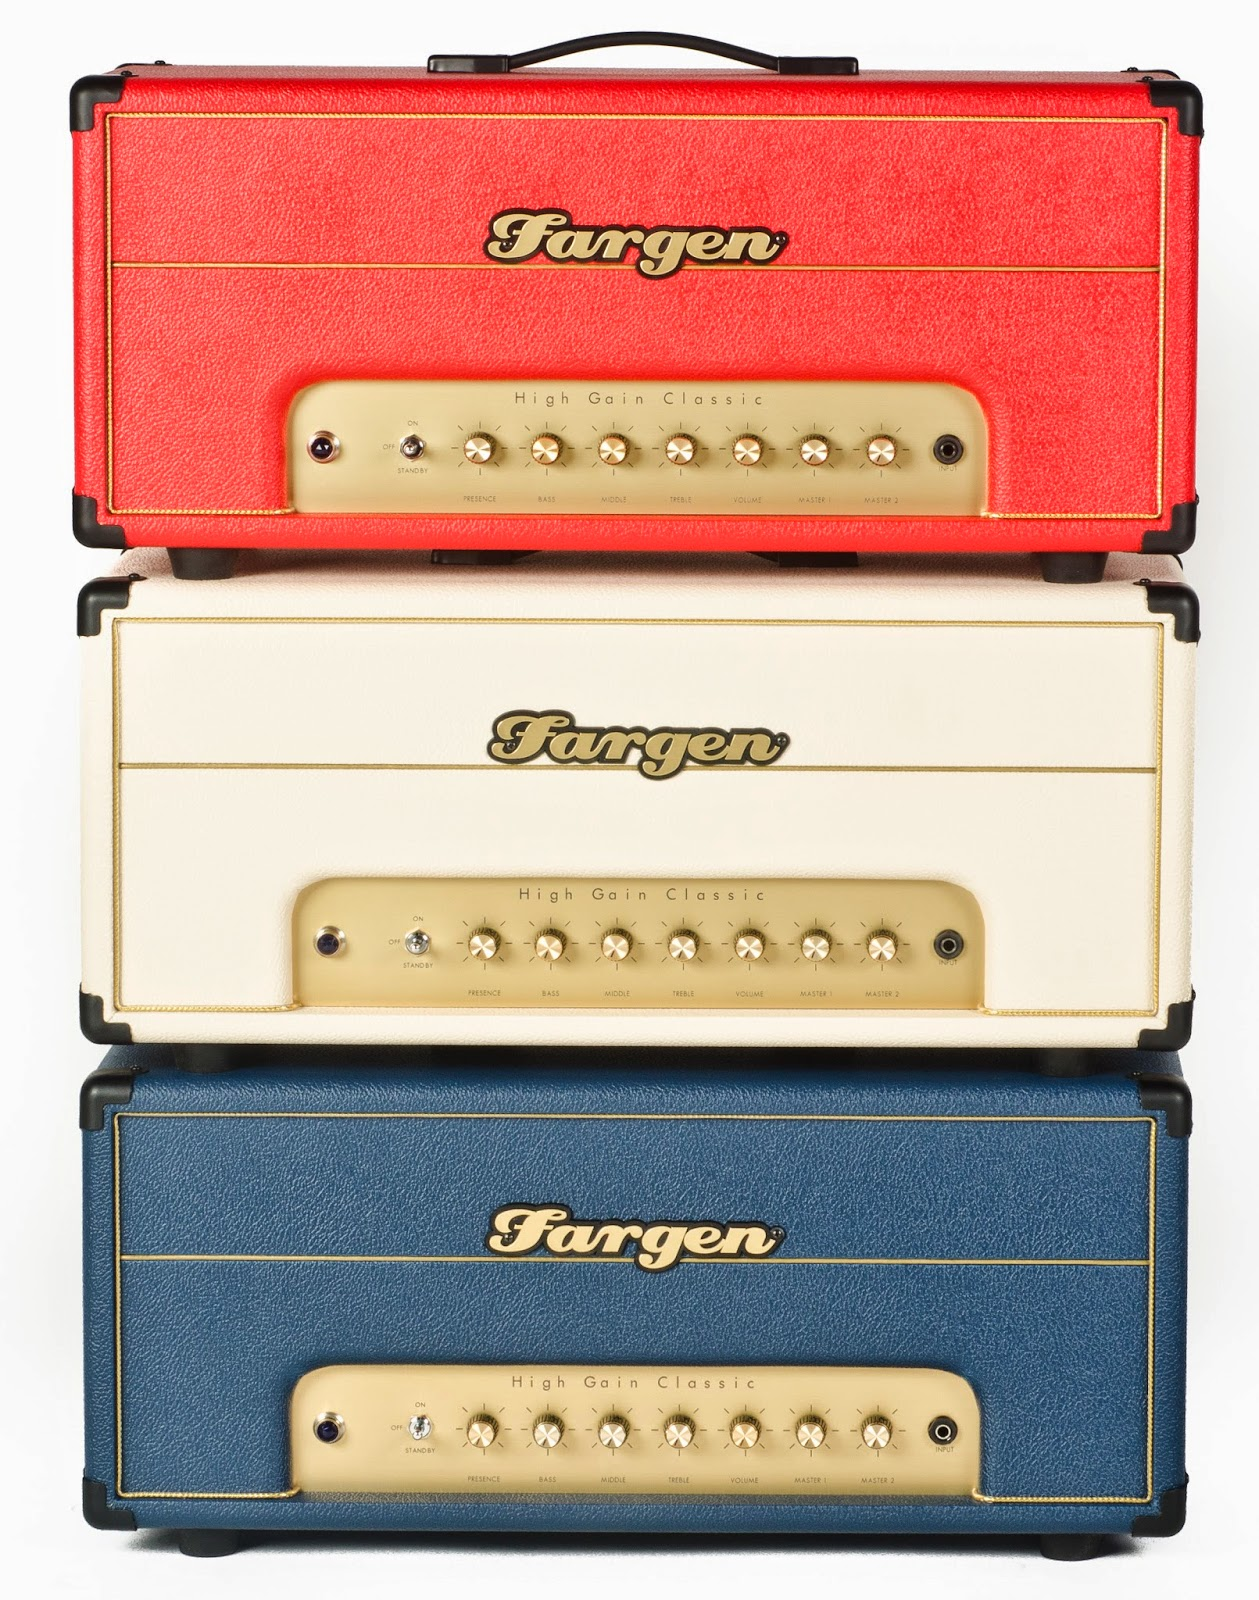 fargen, fargen high gain, fargen high gain classic, fargen high gain classic 50, classic 50, high gain classic 50, tube amp, guitar tube, guitar amp, amplifier